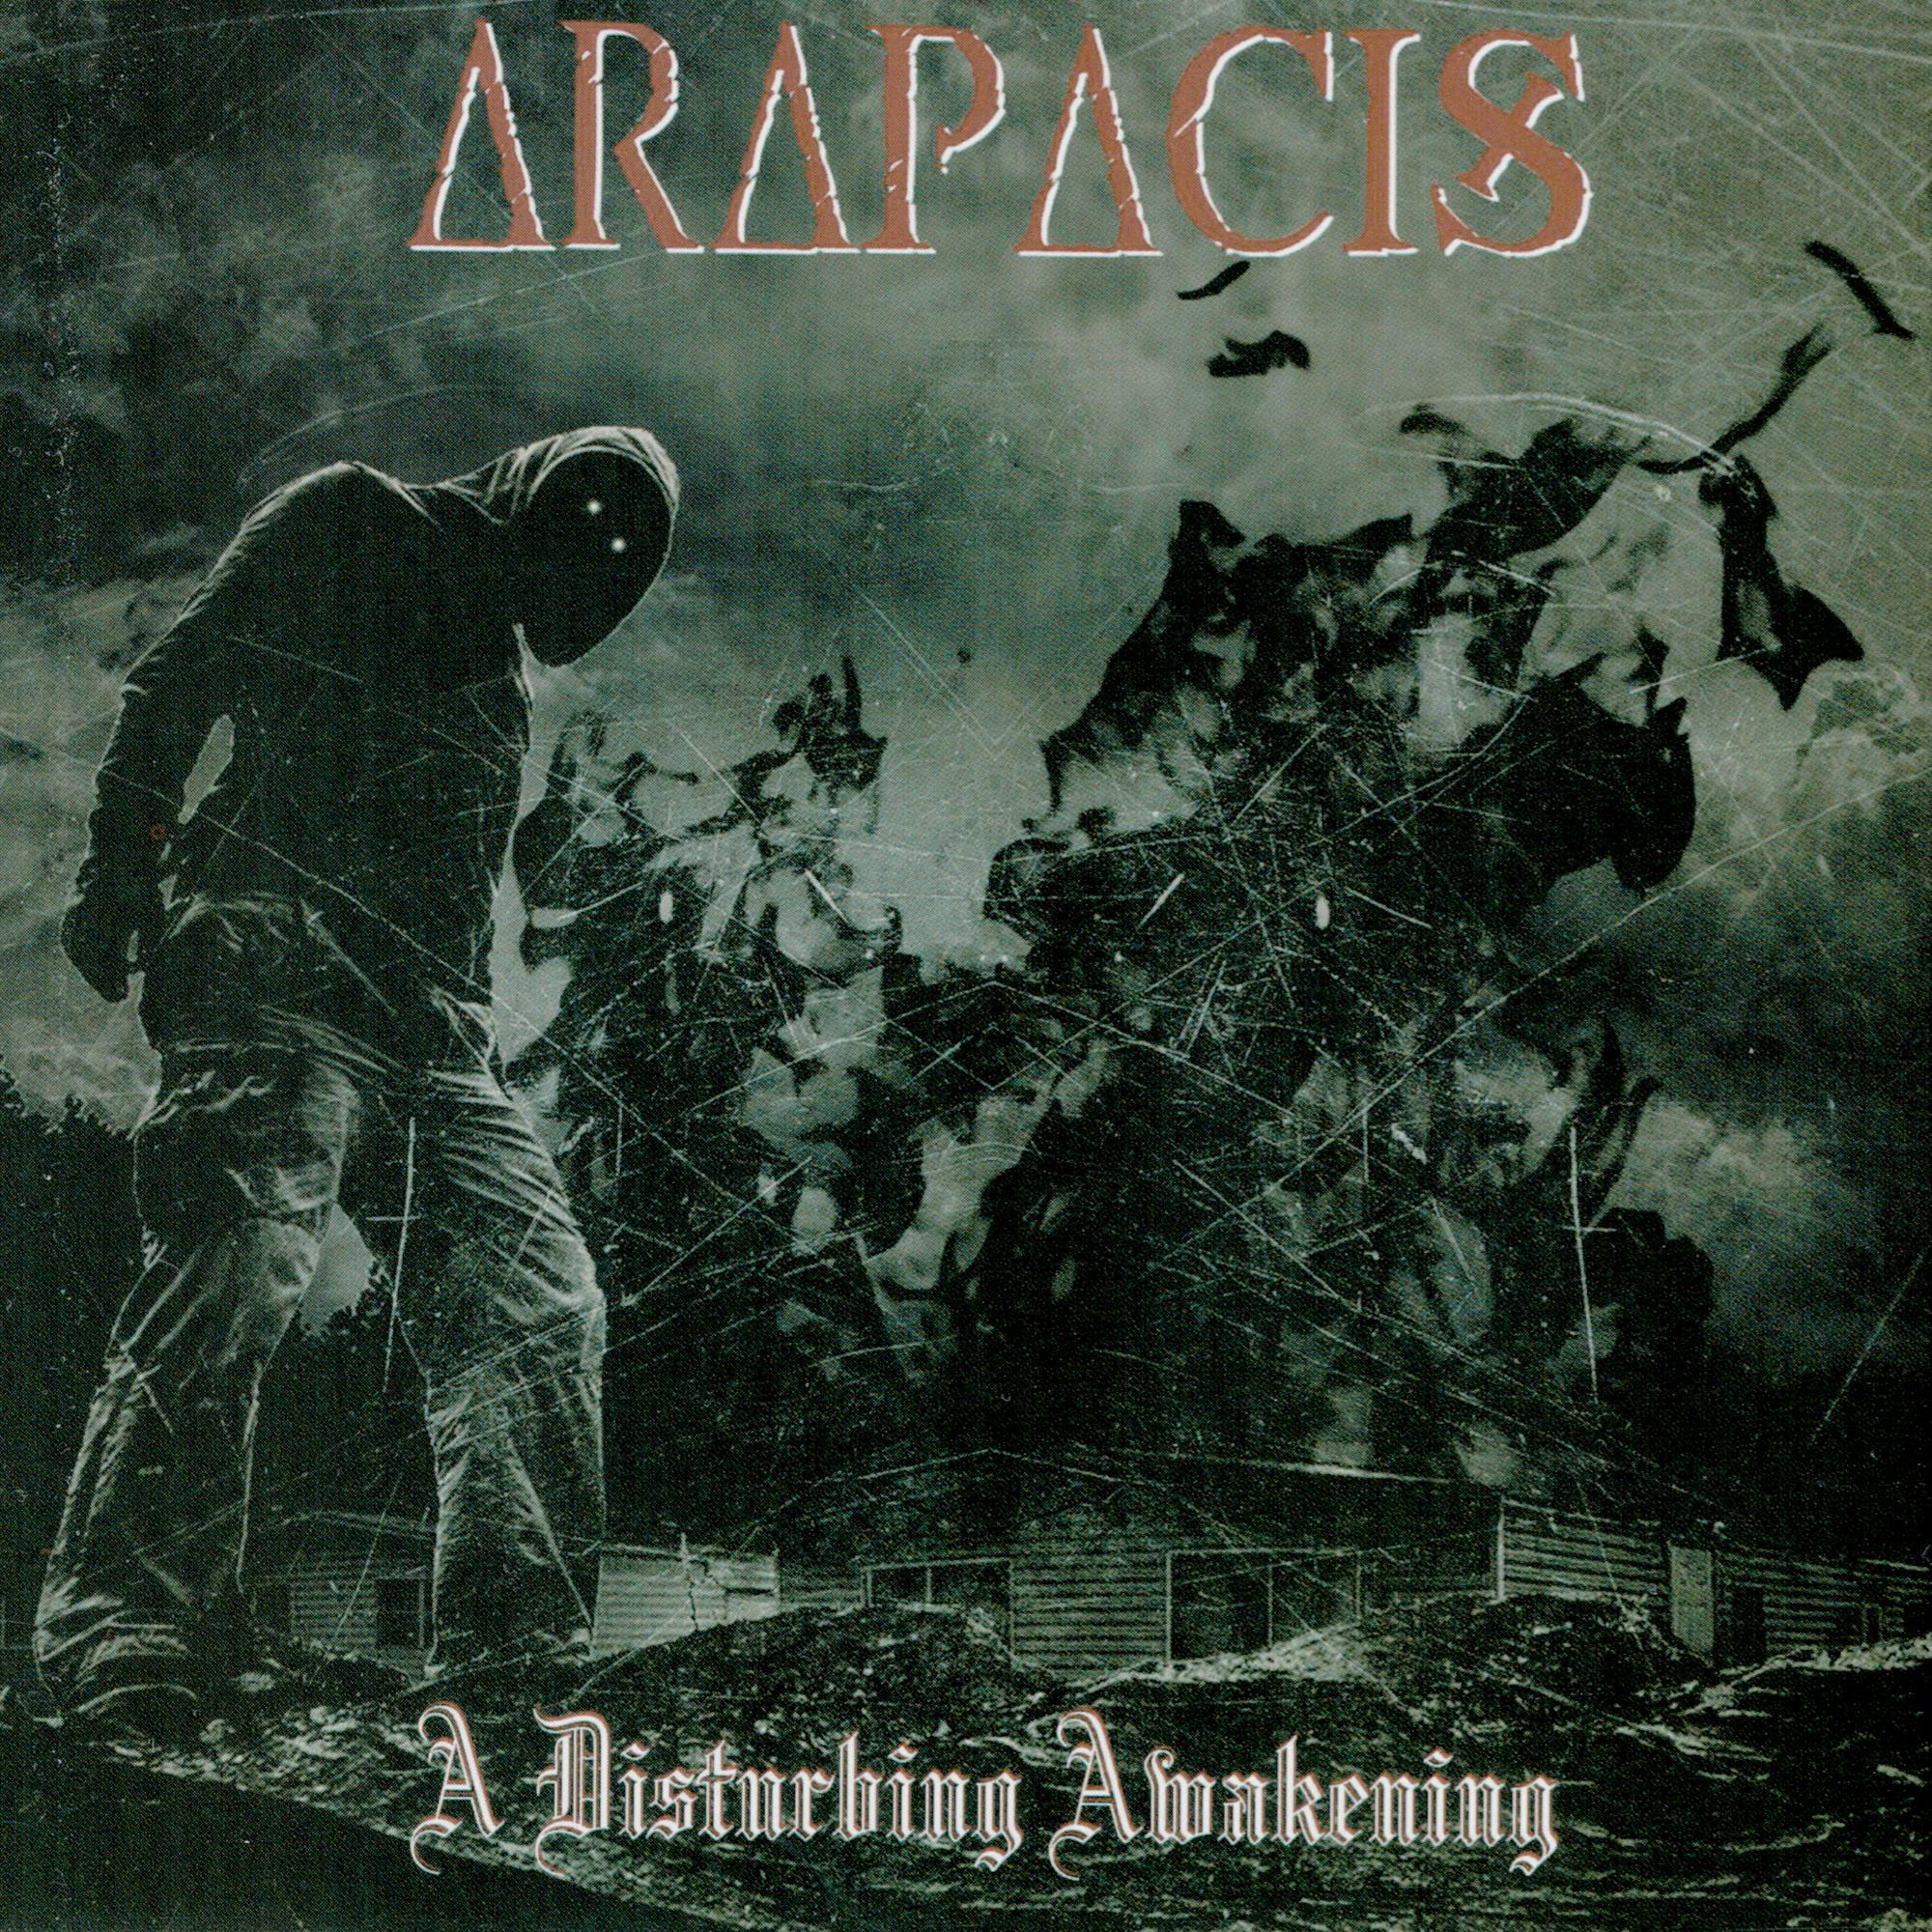 A Disturbing Awakening CD